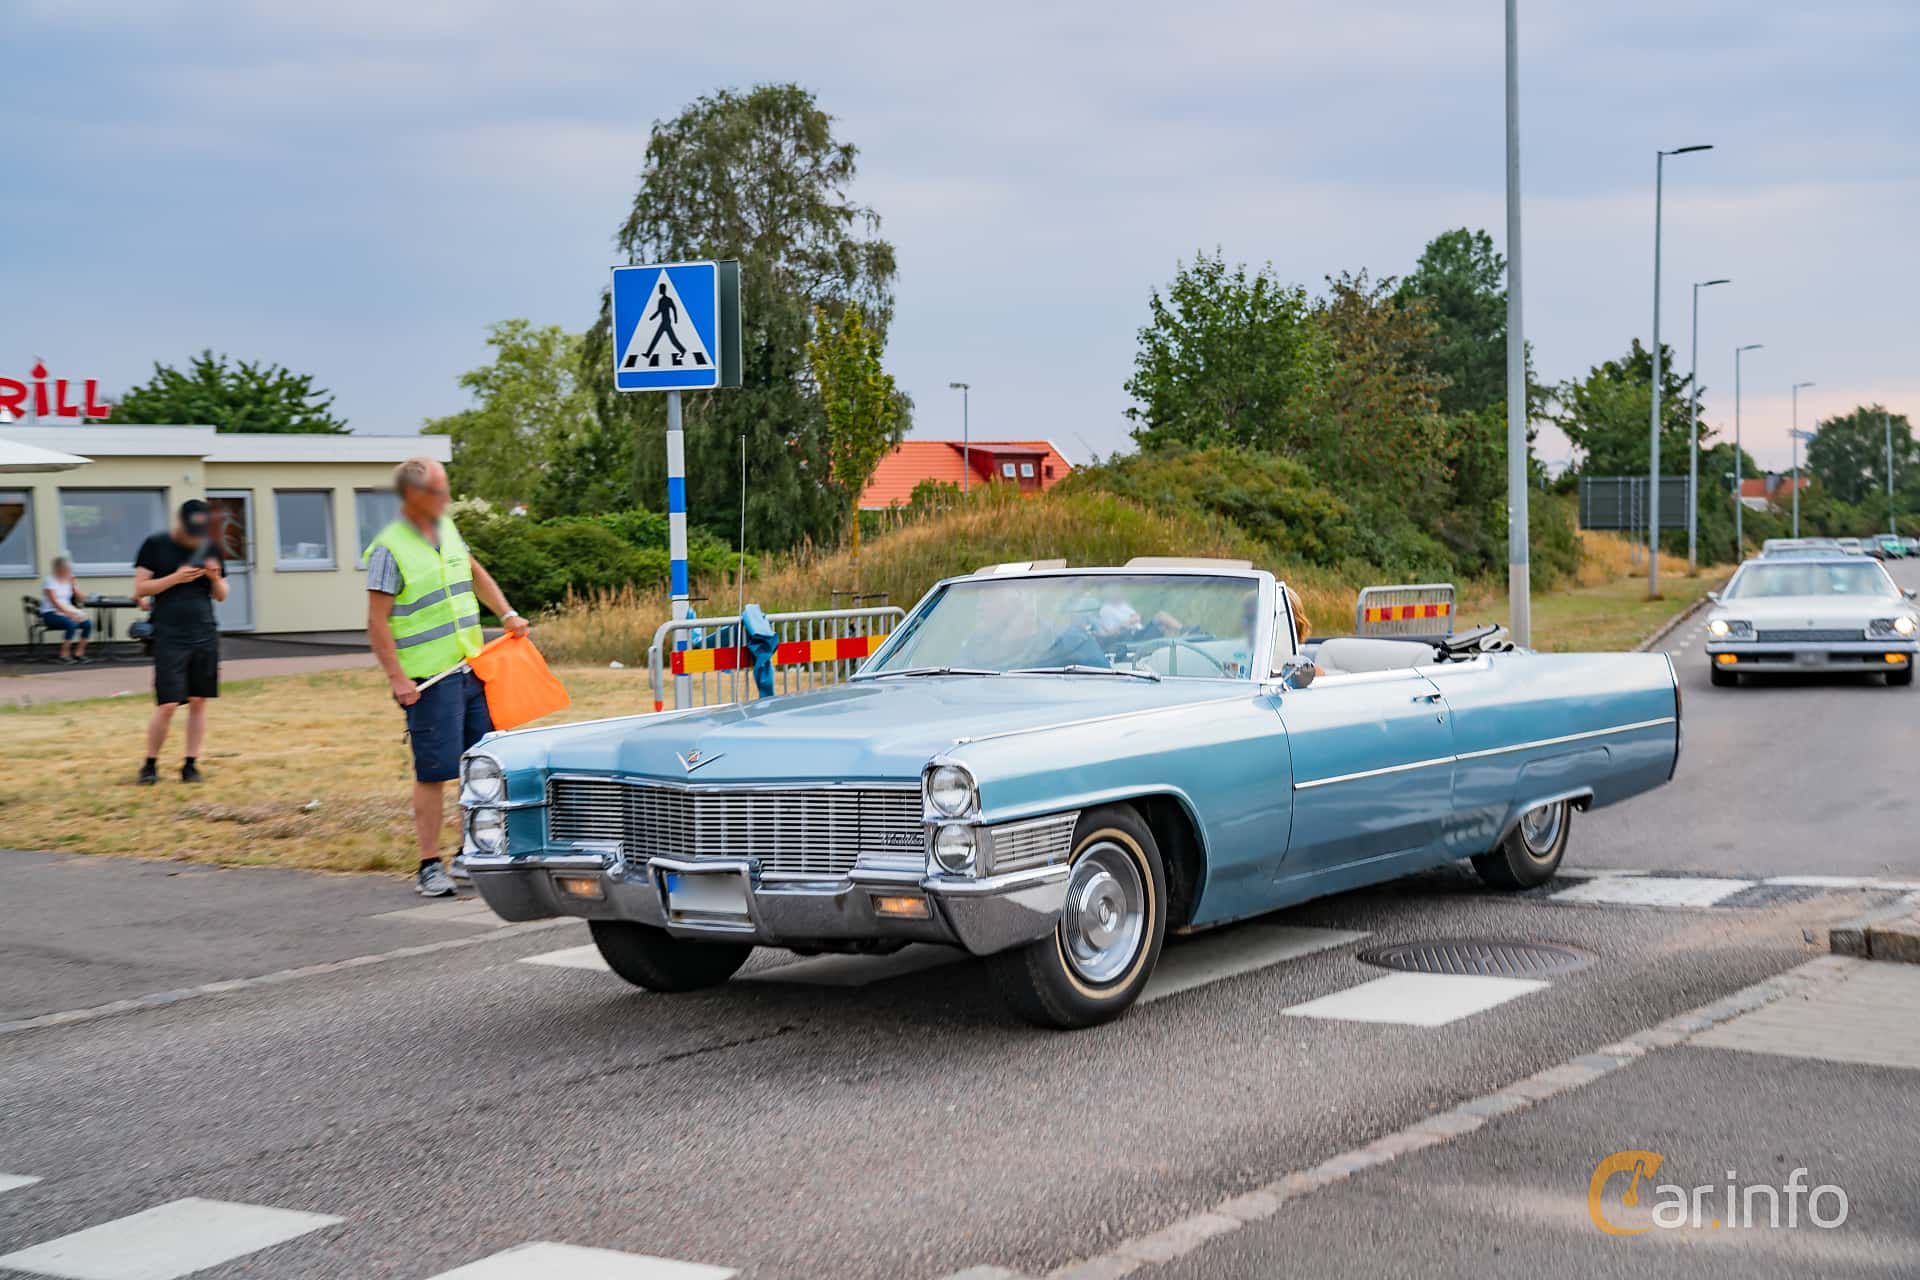 Cadillac De Ville Convertible 7.0 V8 OHV Hydra-Matic, 345hp, 1965 at Wheels & Wings 2019